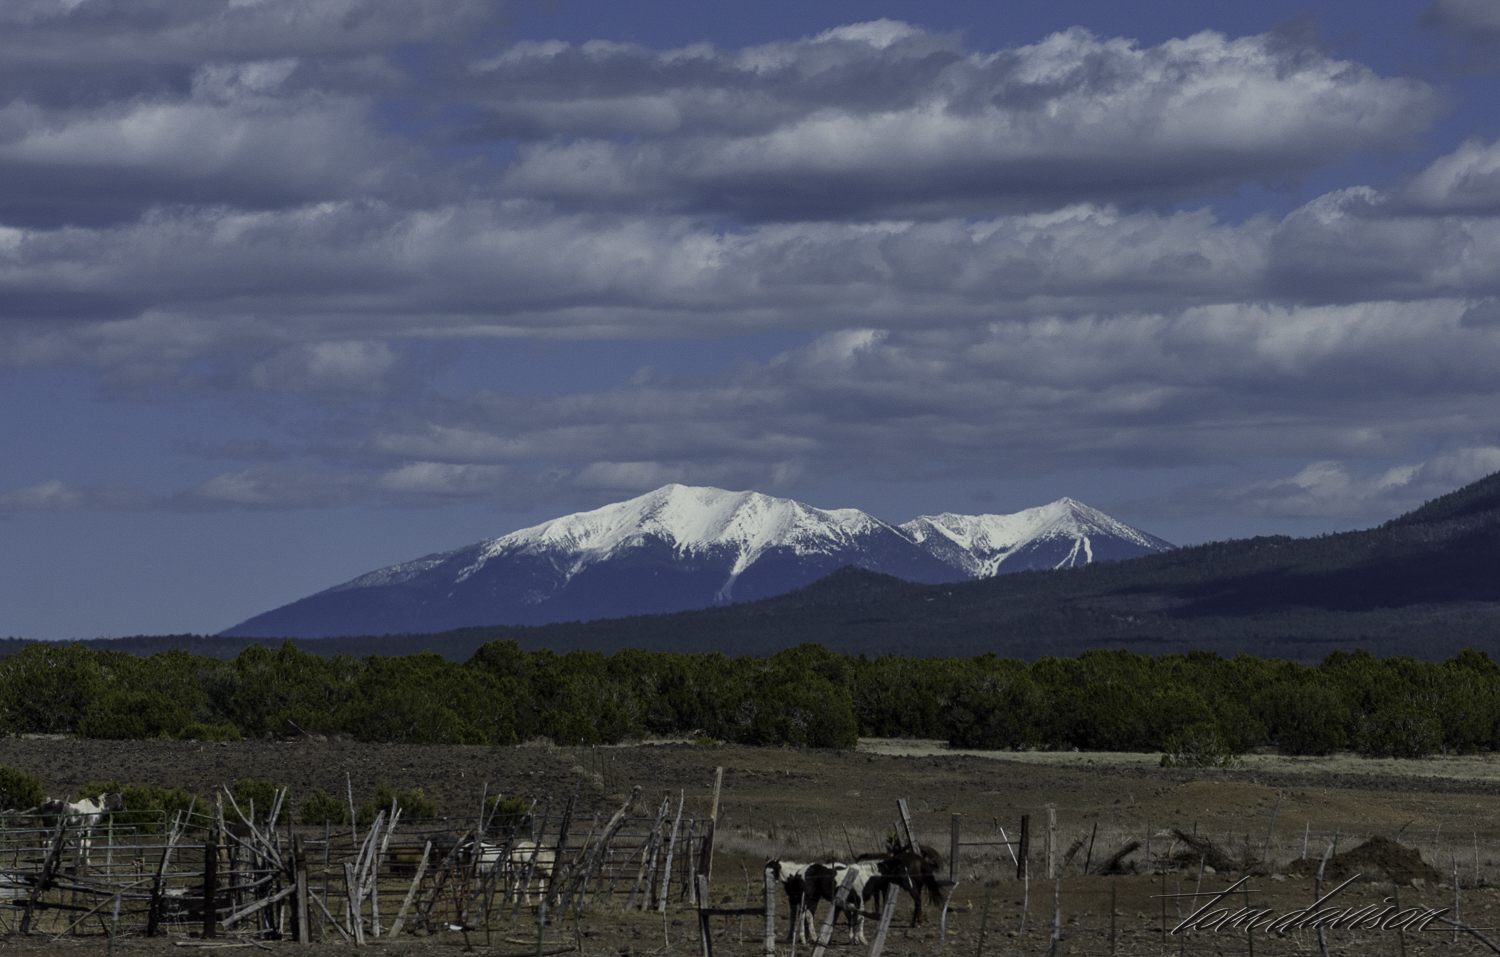 Still snow on the peaks around Flagstaff.